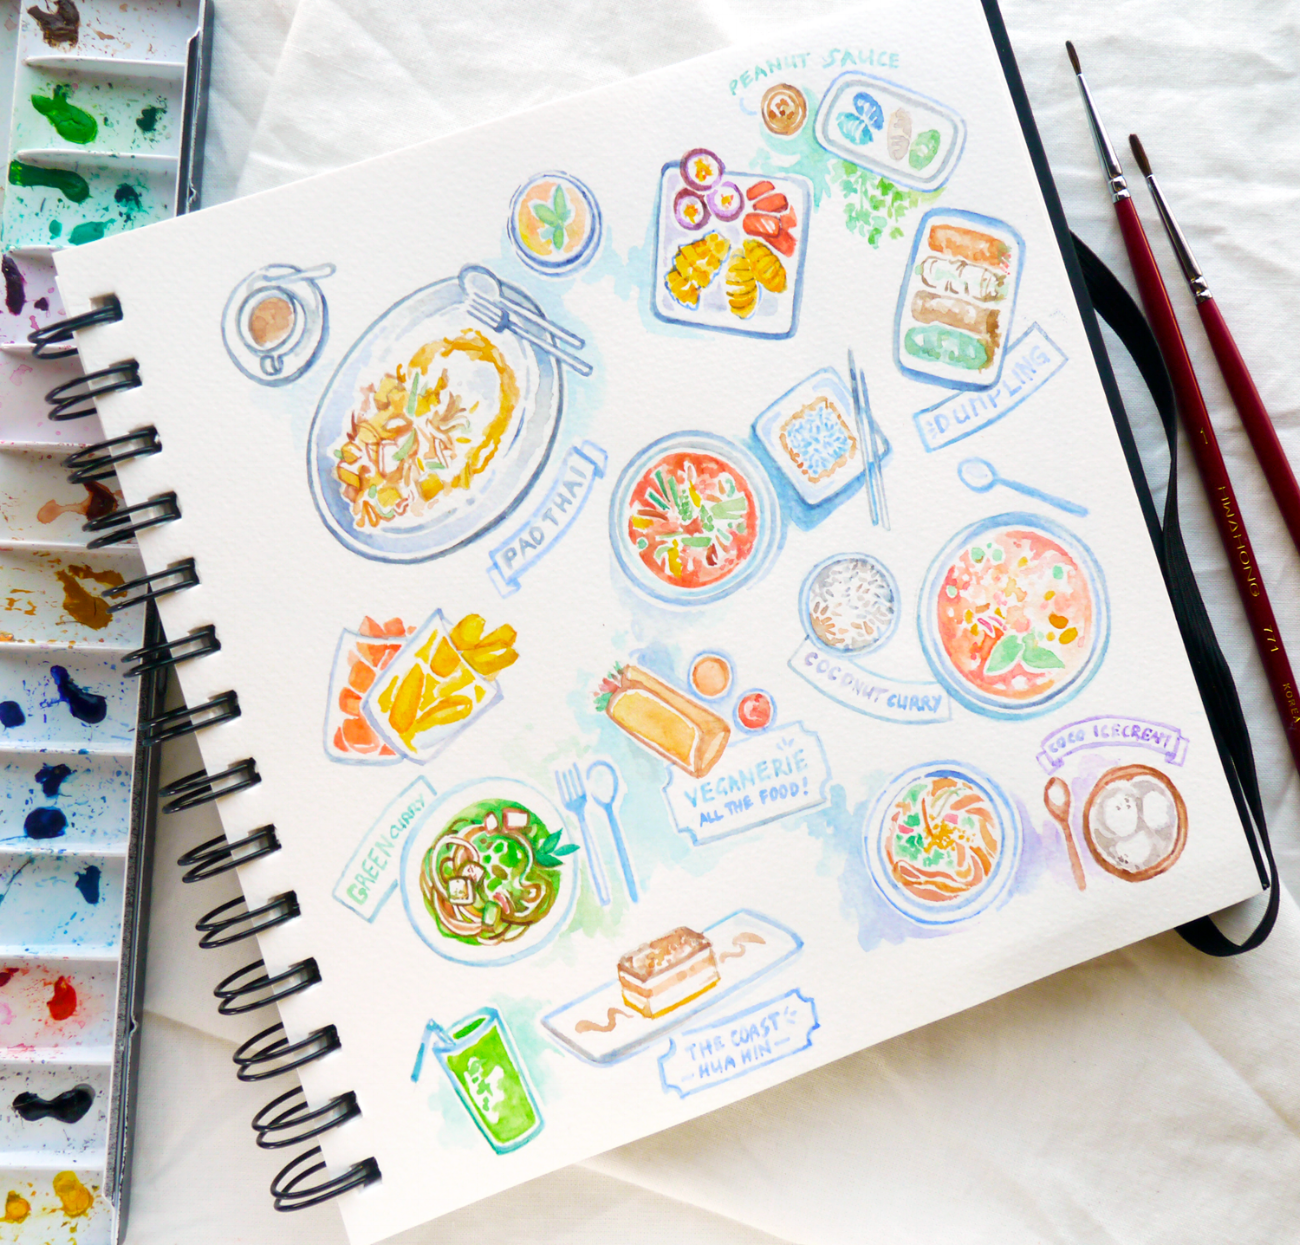 A week in Thailand: Vegan Food Diary & Illustrations. A quick guide to vegan-friendly restaurants, hotels and resorts in Bangkok and Huahin.